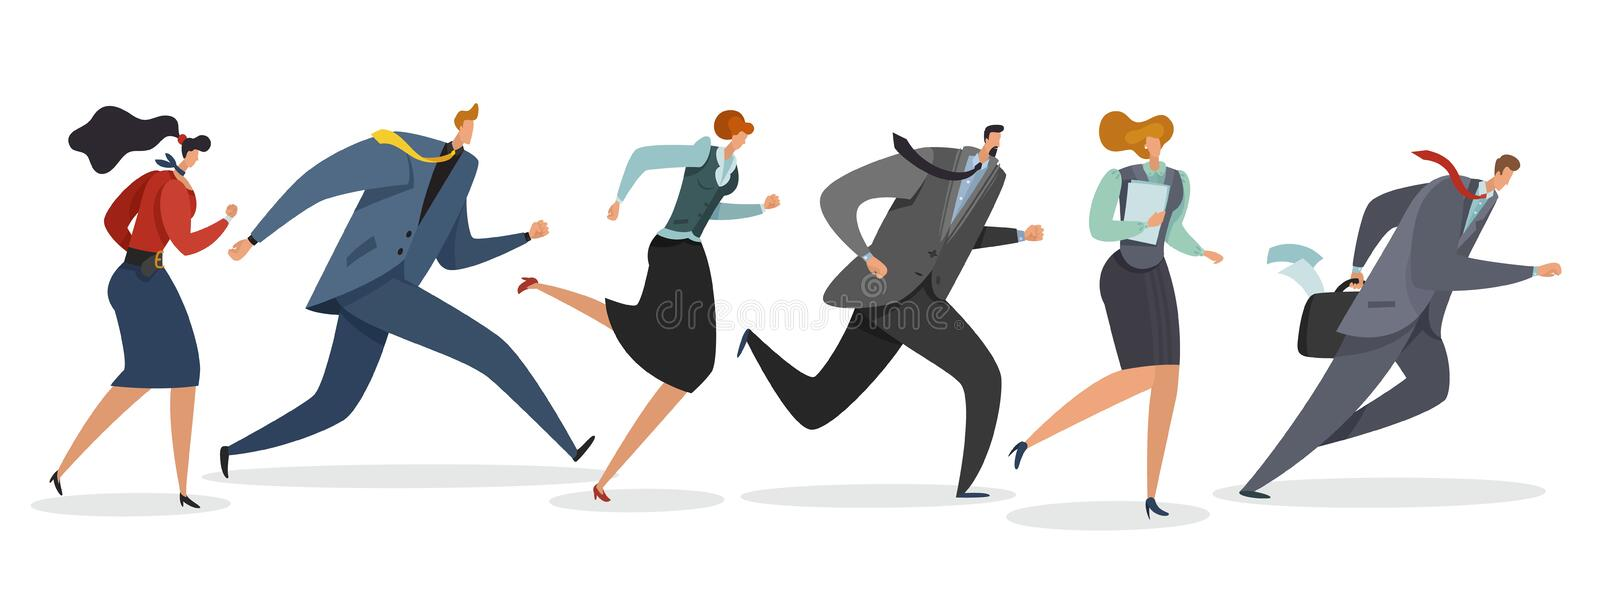 Business team running. Persons waving flag and jogging follow leader to professional triumph winning illustration. Business team running. Persons waving flag and vector illustration